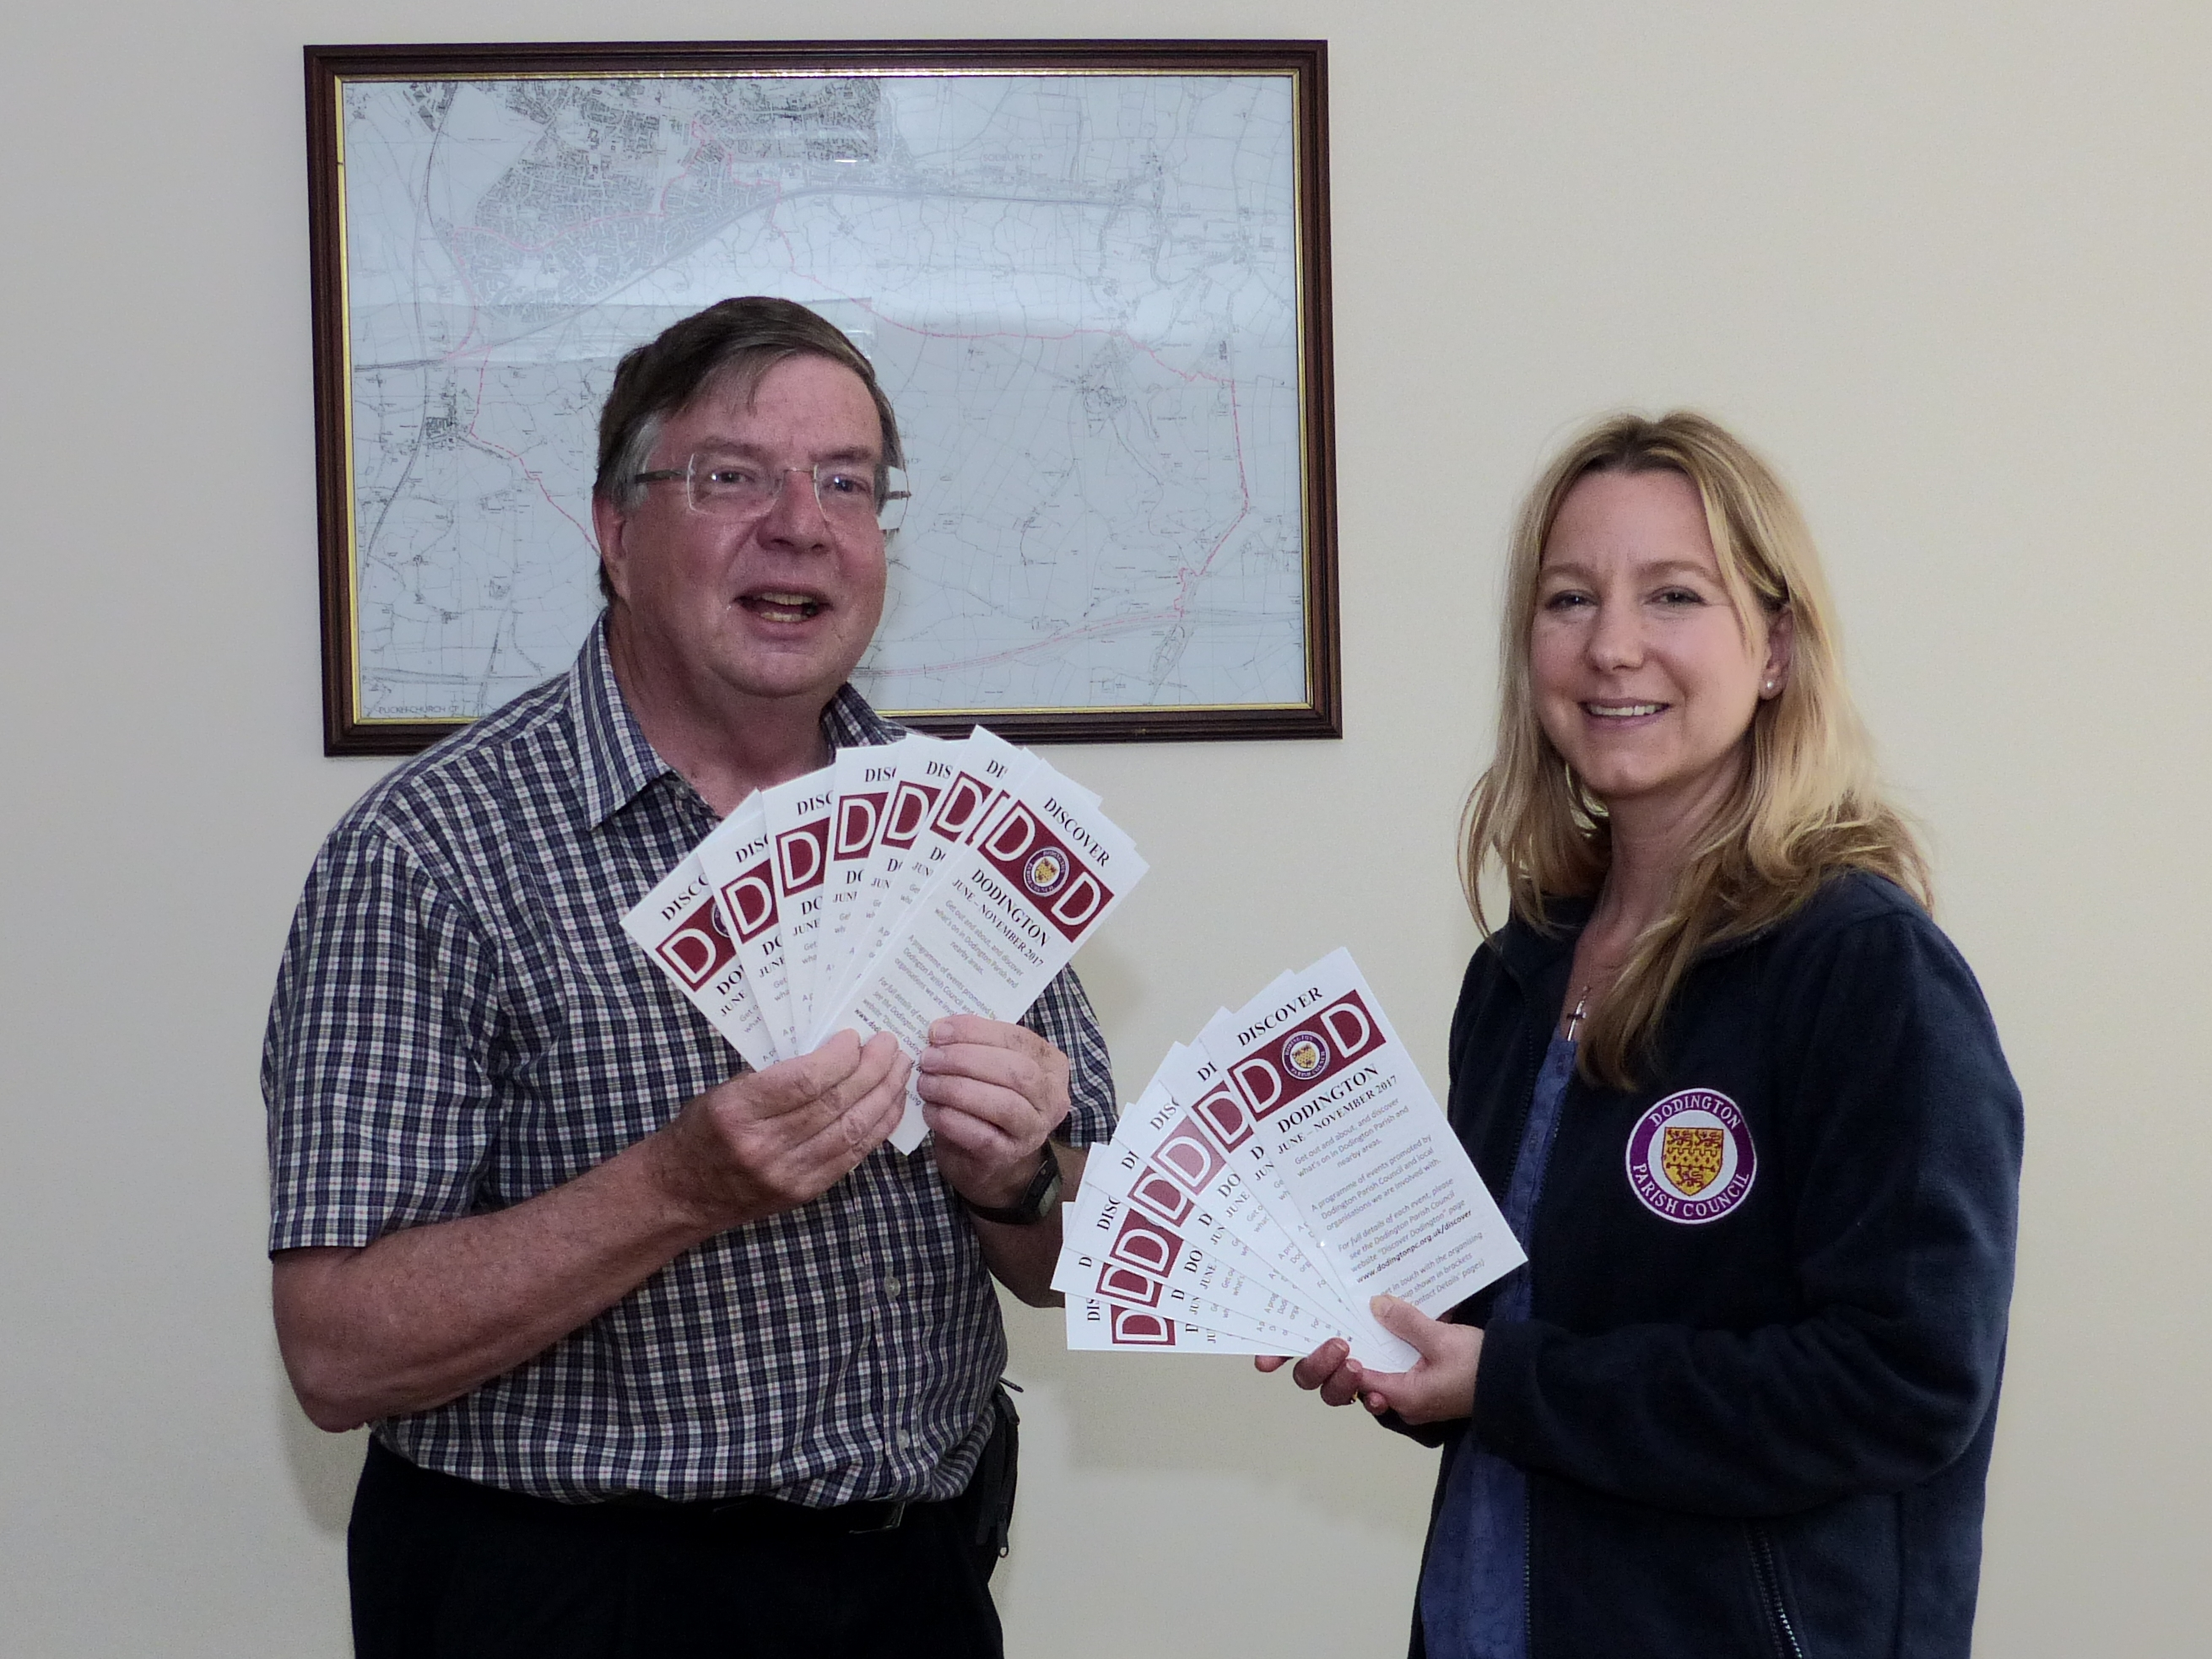 Councillor Paul Hulbert and Clerk Hannah Saunders with leaflets